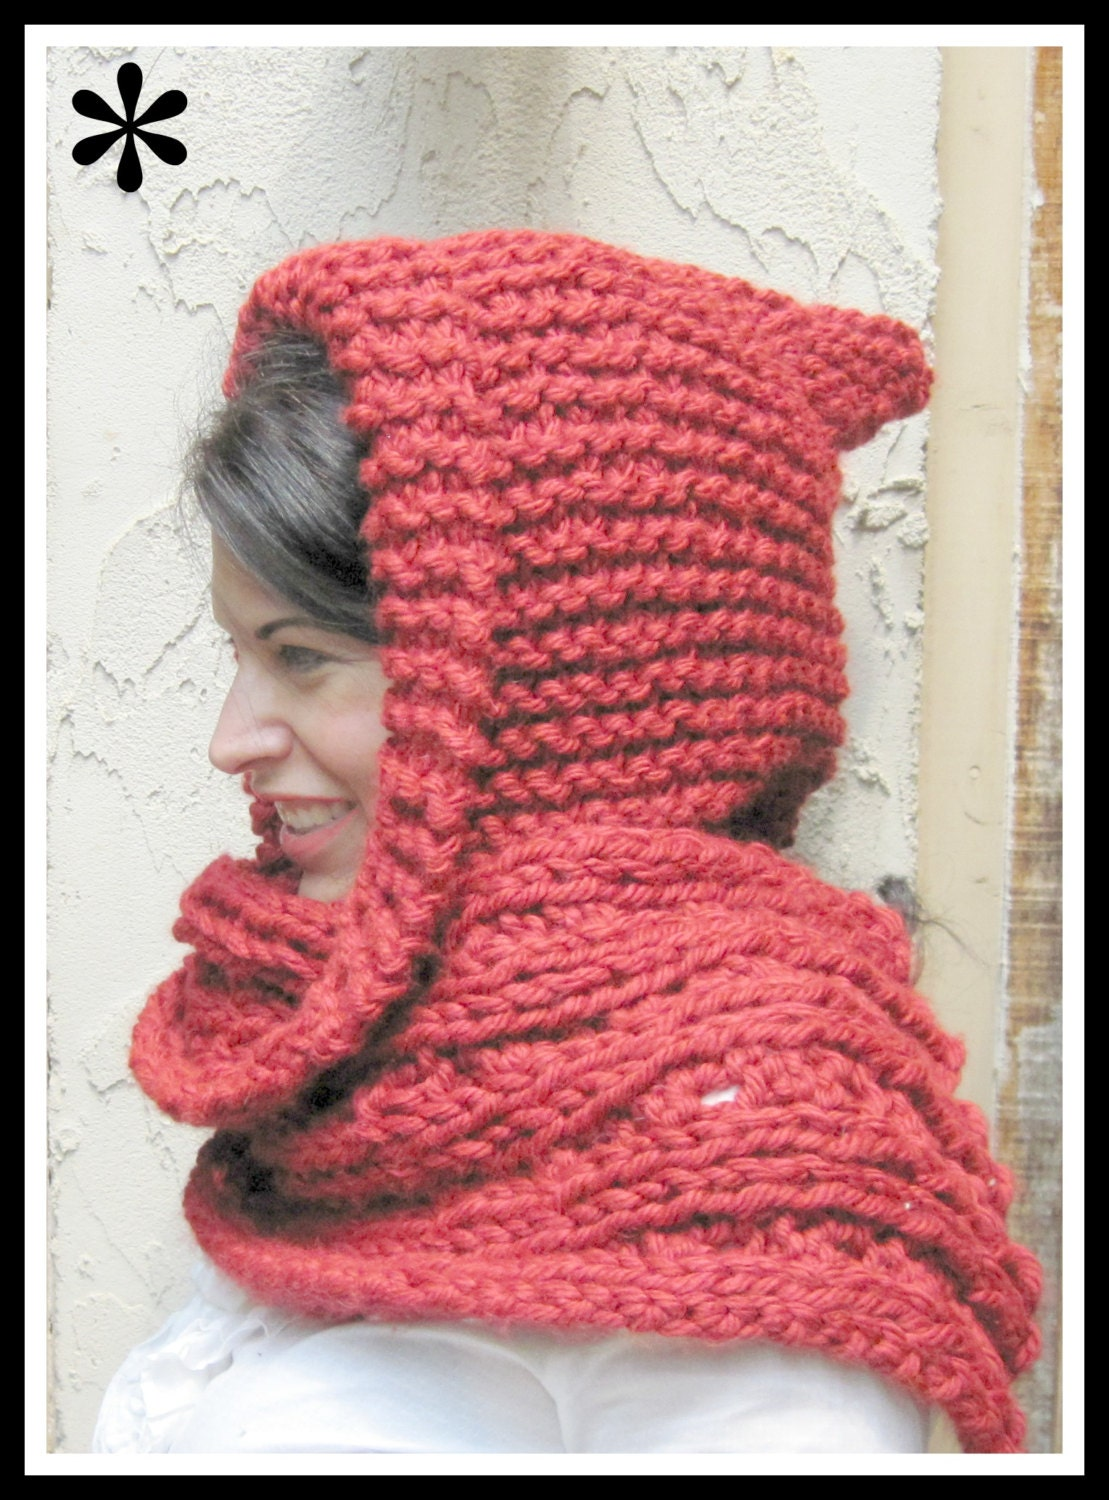 Knitting Pattern For Scarf With Bulky Yarn : Red Hooded Scarf in Bulky Yarn Knitting Pattern Adult Size